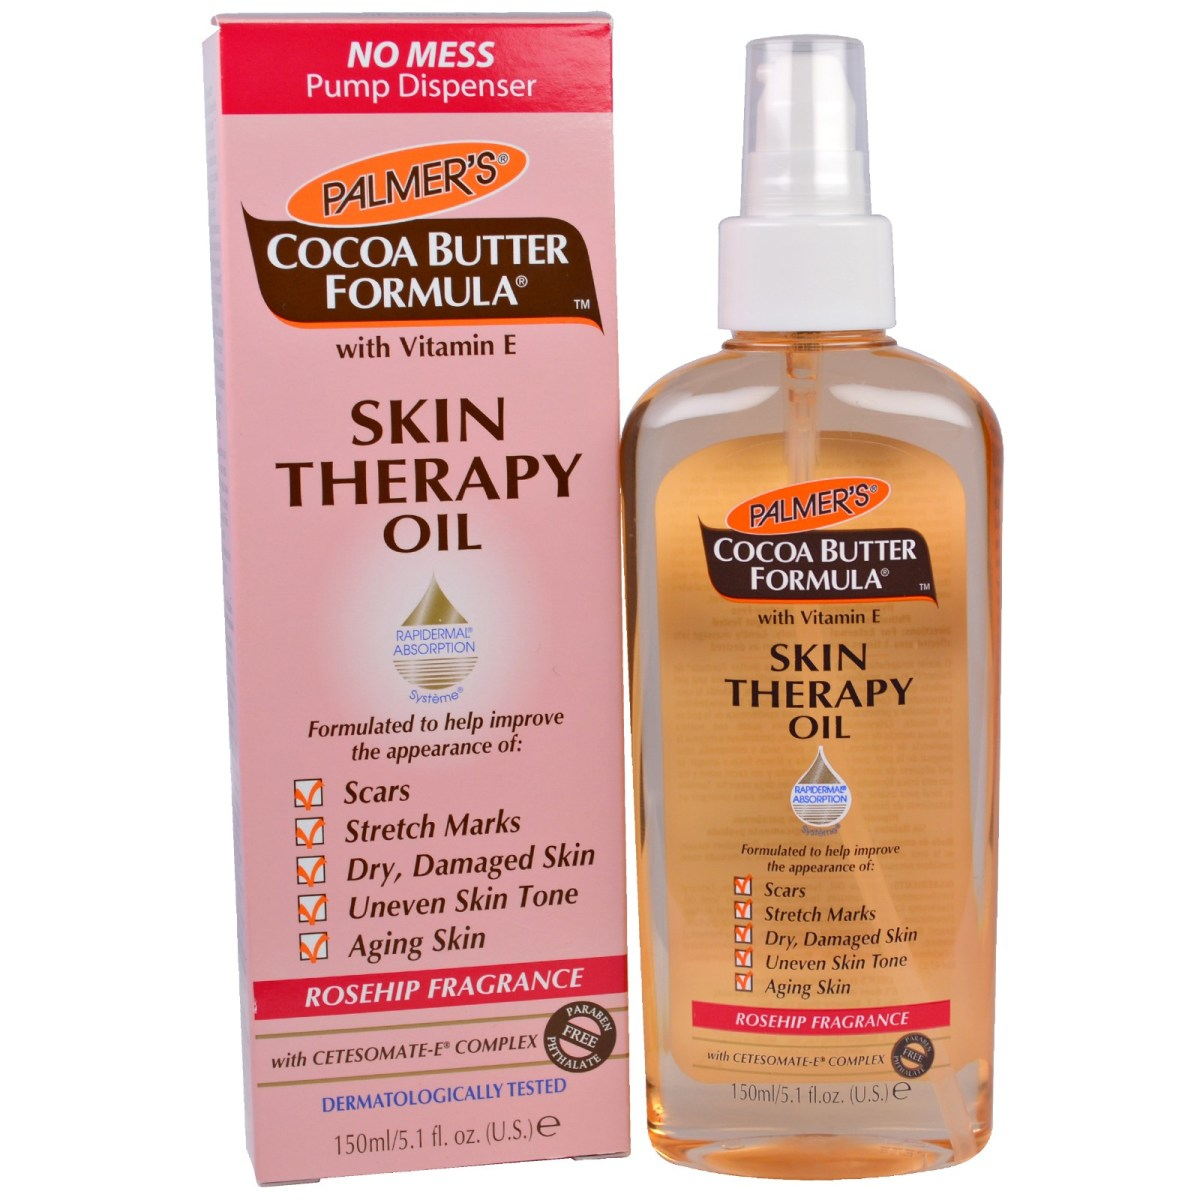 cruelty-free-products-for-acne-and-blemish-prone-skin